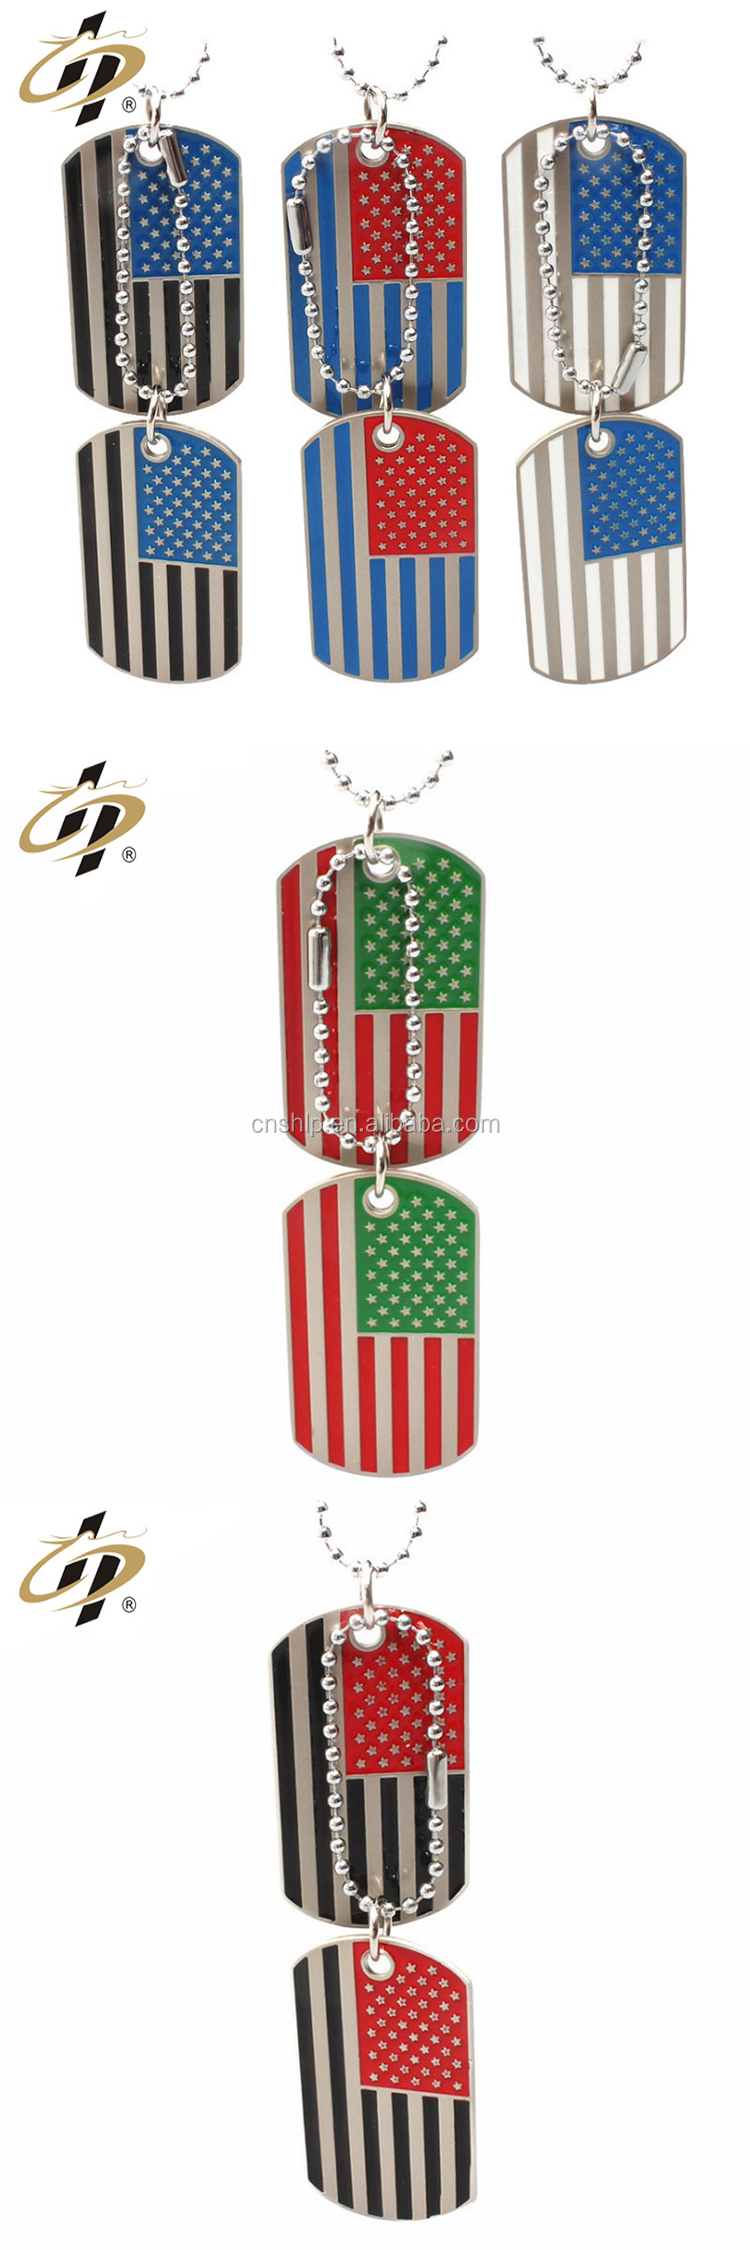 Wholesale custom metal American flag military souvenir dog tag